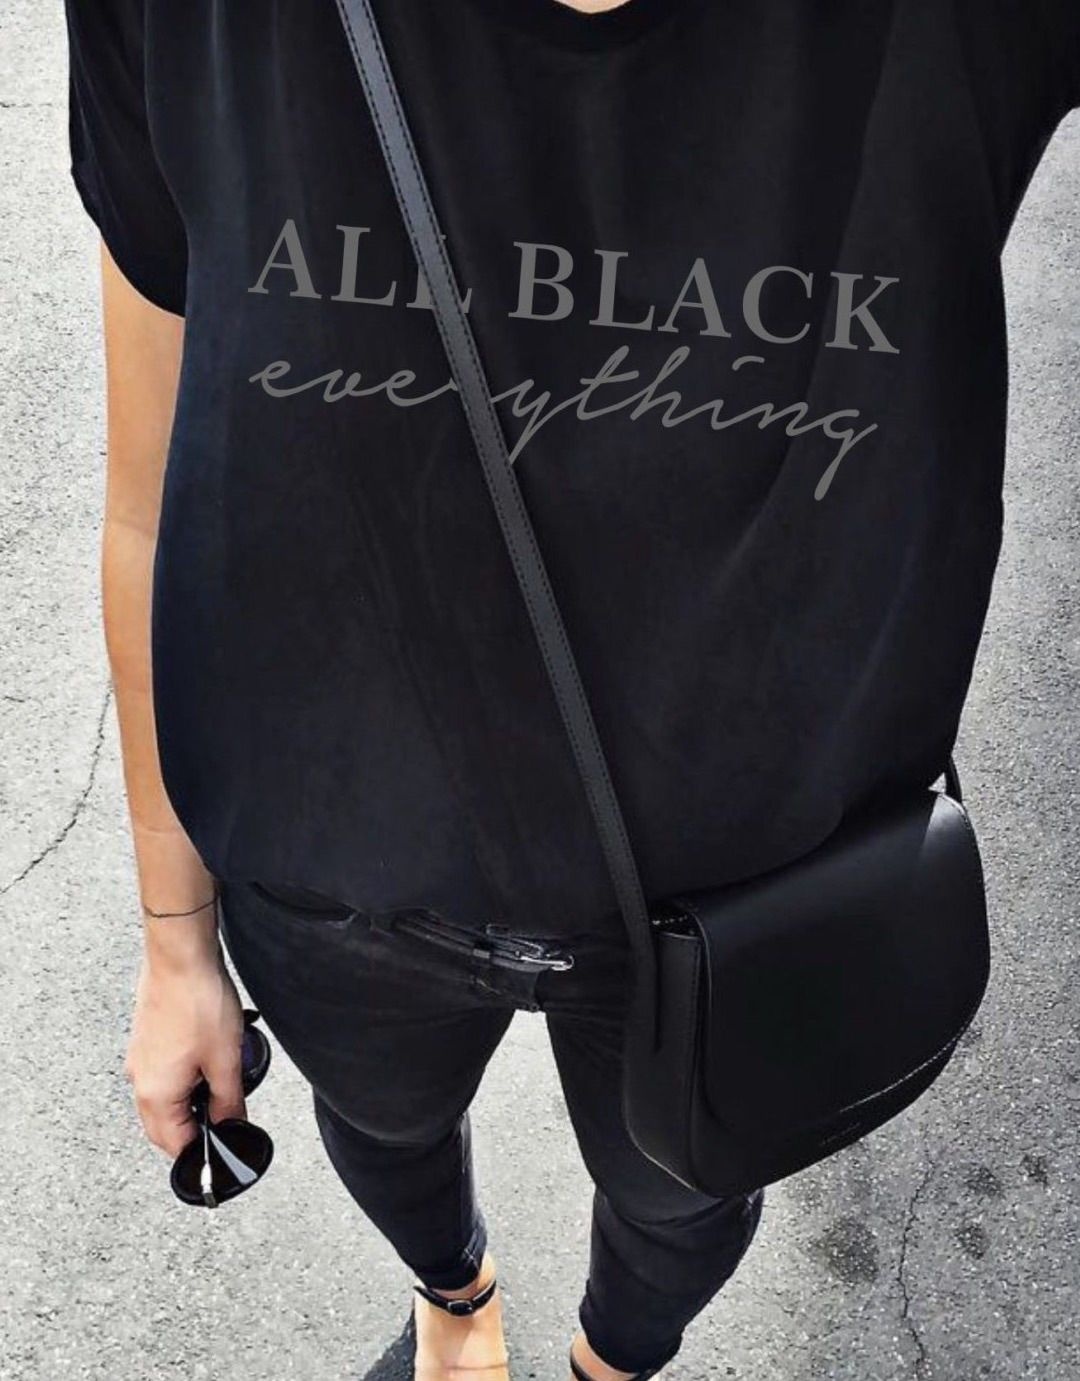 fe4f59a31c0c4 All black everything Tee - Hell Yes! | Awesome fashion clothes for stylish  women from Zefinka.